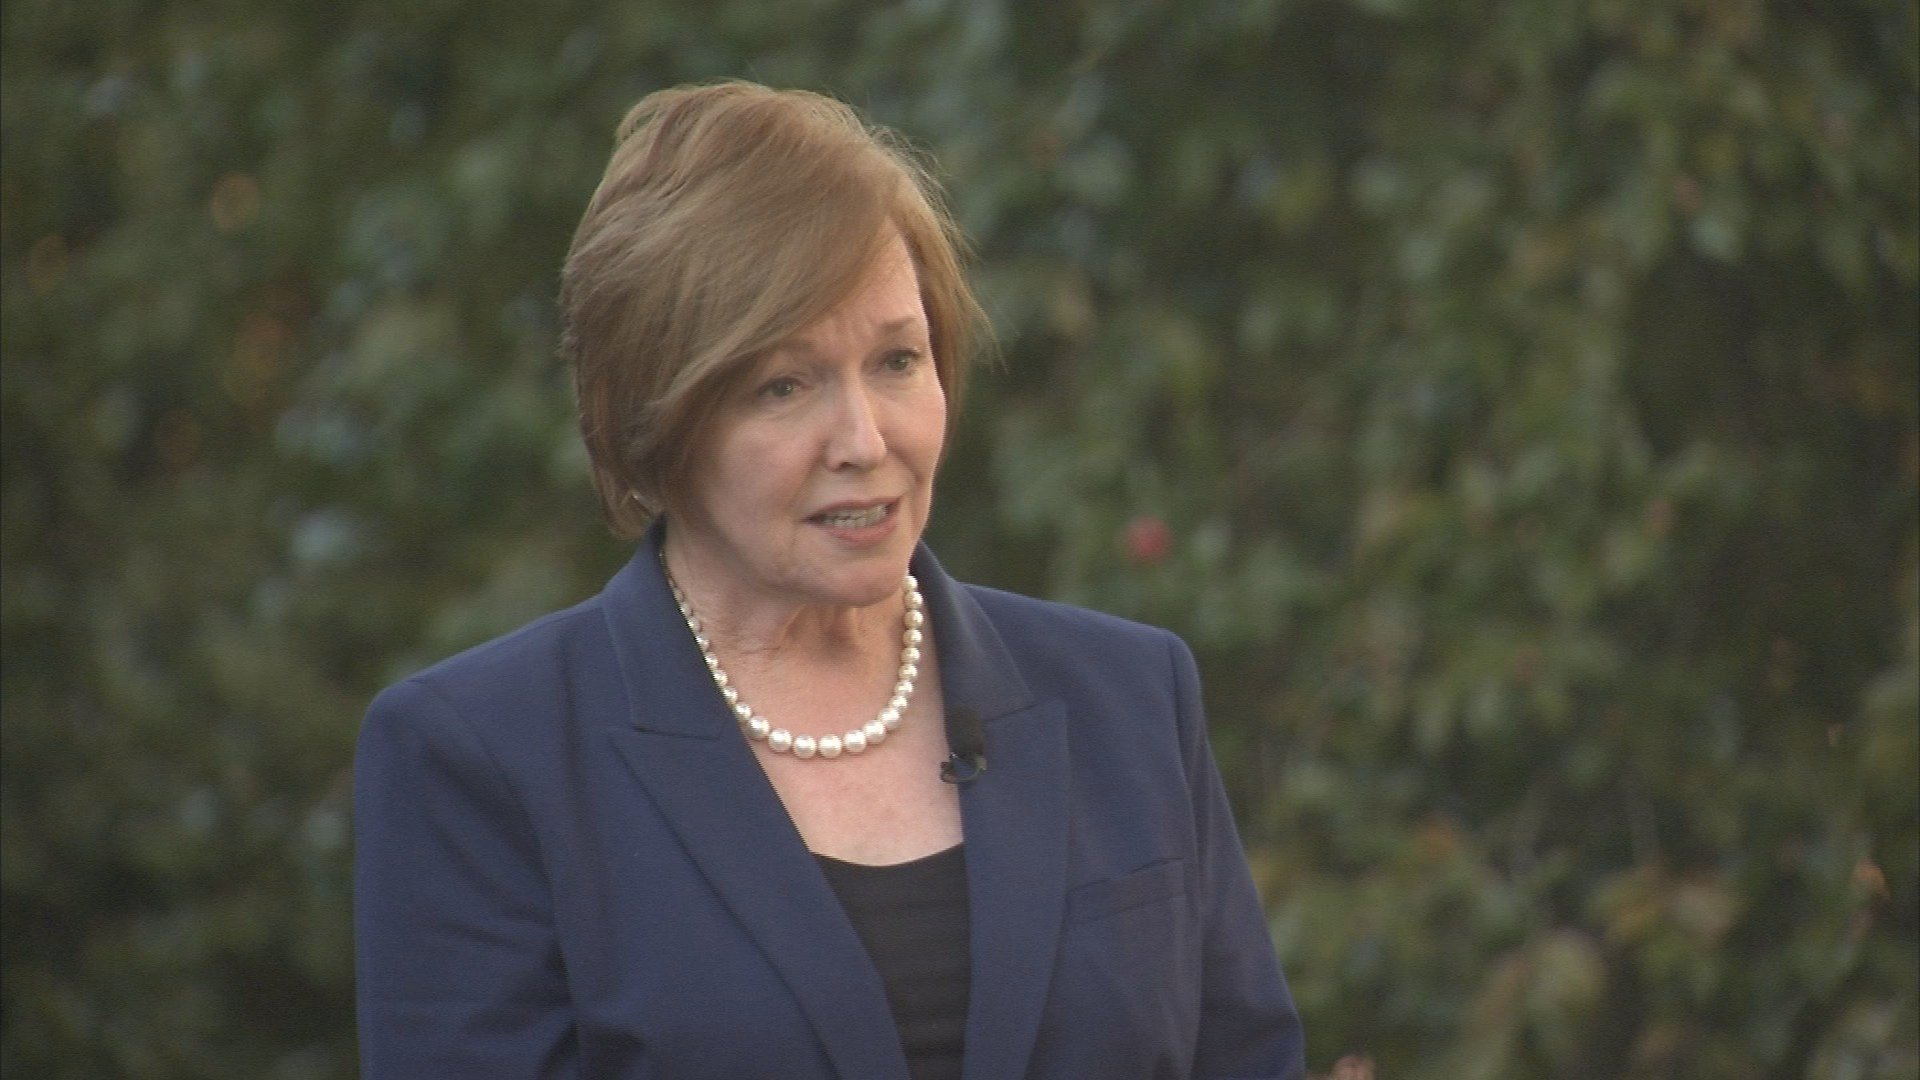 Dr. Brenda Fitzgerald explains how she became involved with entangling investments (WGCL)